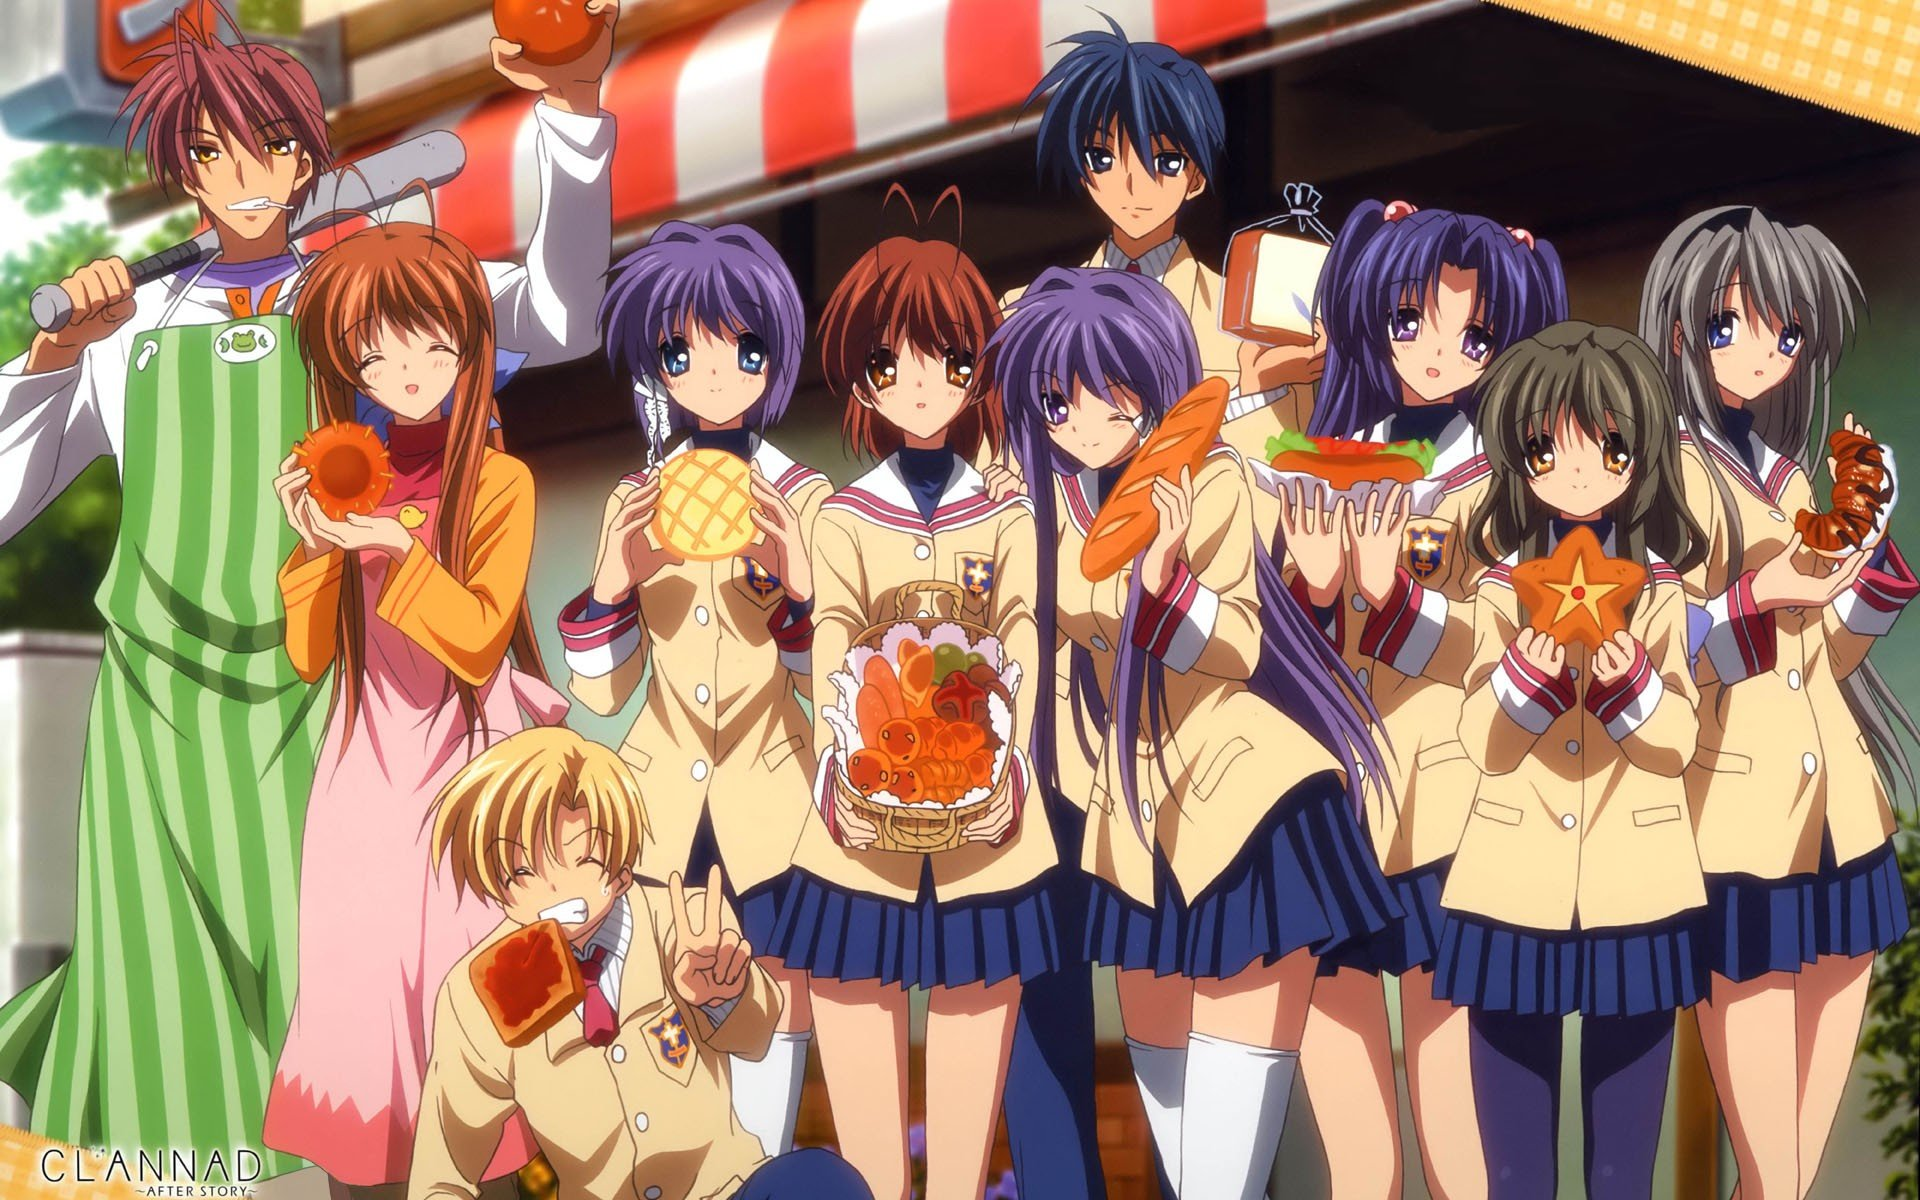 Clannad Tomoya Okazaki Sakagami Tomoyo Nagisa Furukawa Hd Wallpapers Desktop And Mobile Images Photos